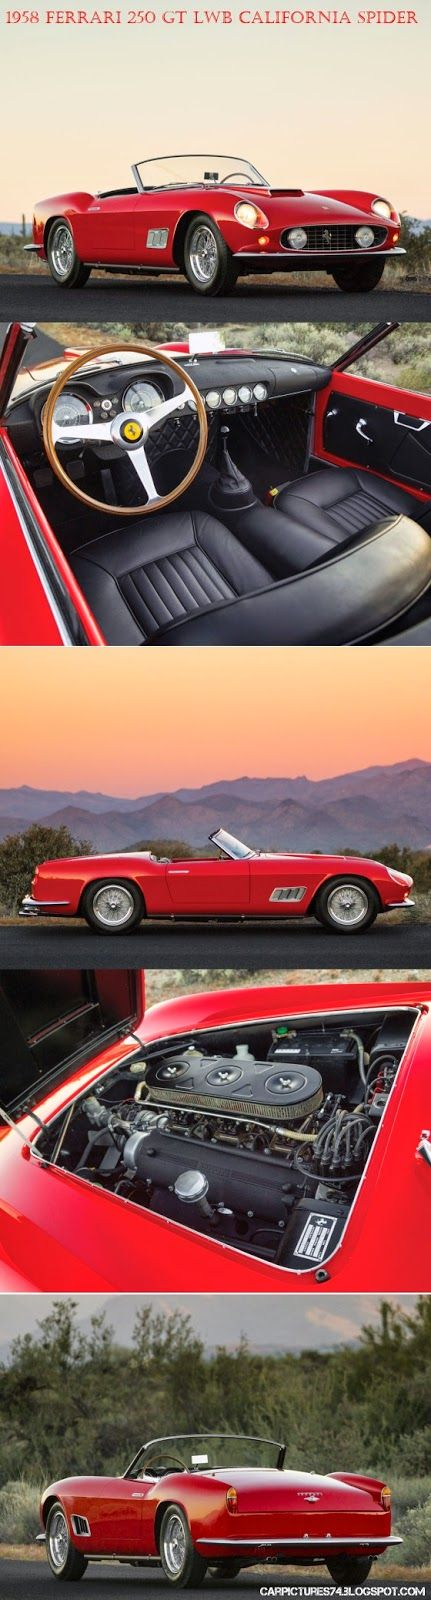 Car Pictures: 1958 Ferrari 250 GT LWB California Spider by Scagl...